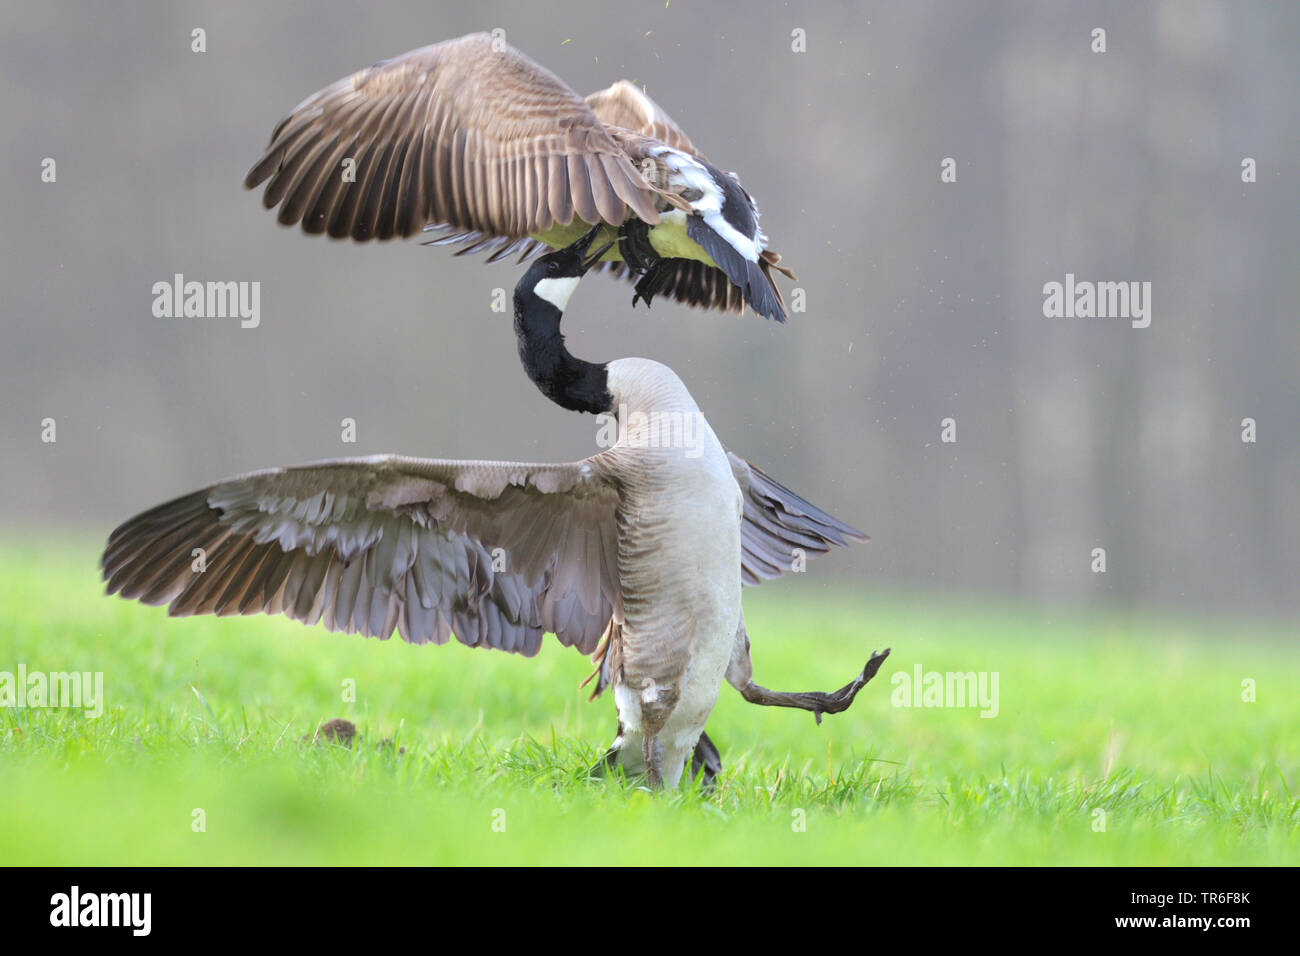 Canada goose (Branta canadensis), two fighting Canada geese in a meadow, Germany - Stock Image